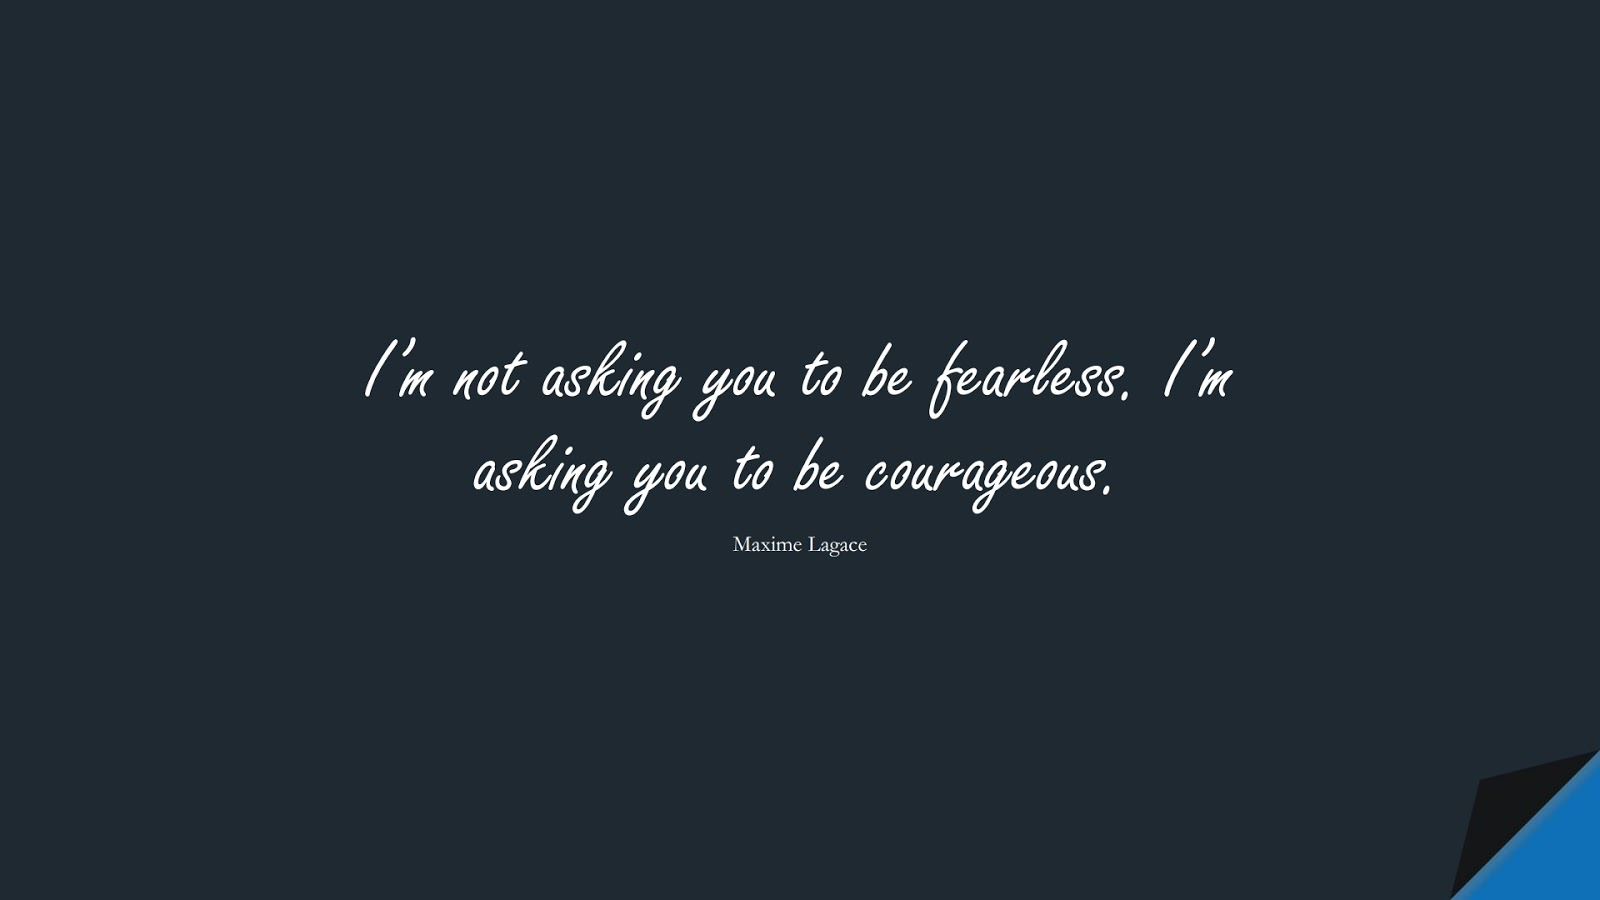 I'm not asking you to be fearless. I'm asking you to be courageous. (Maxime Lagace);  #StoicQuotes